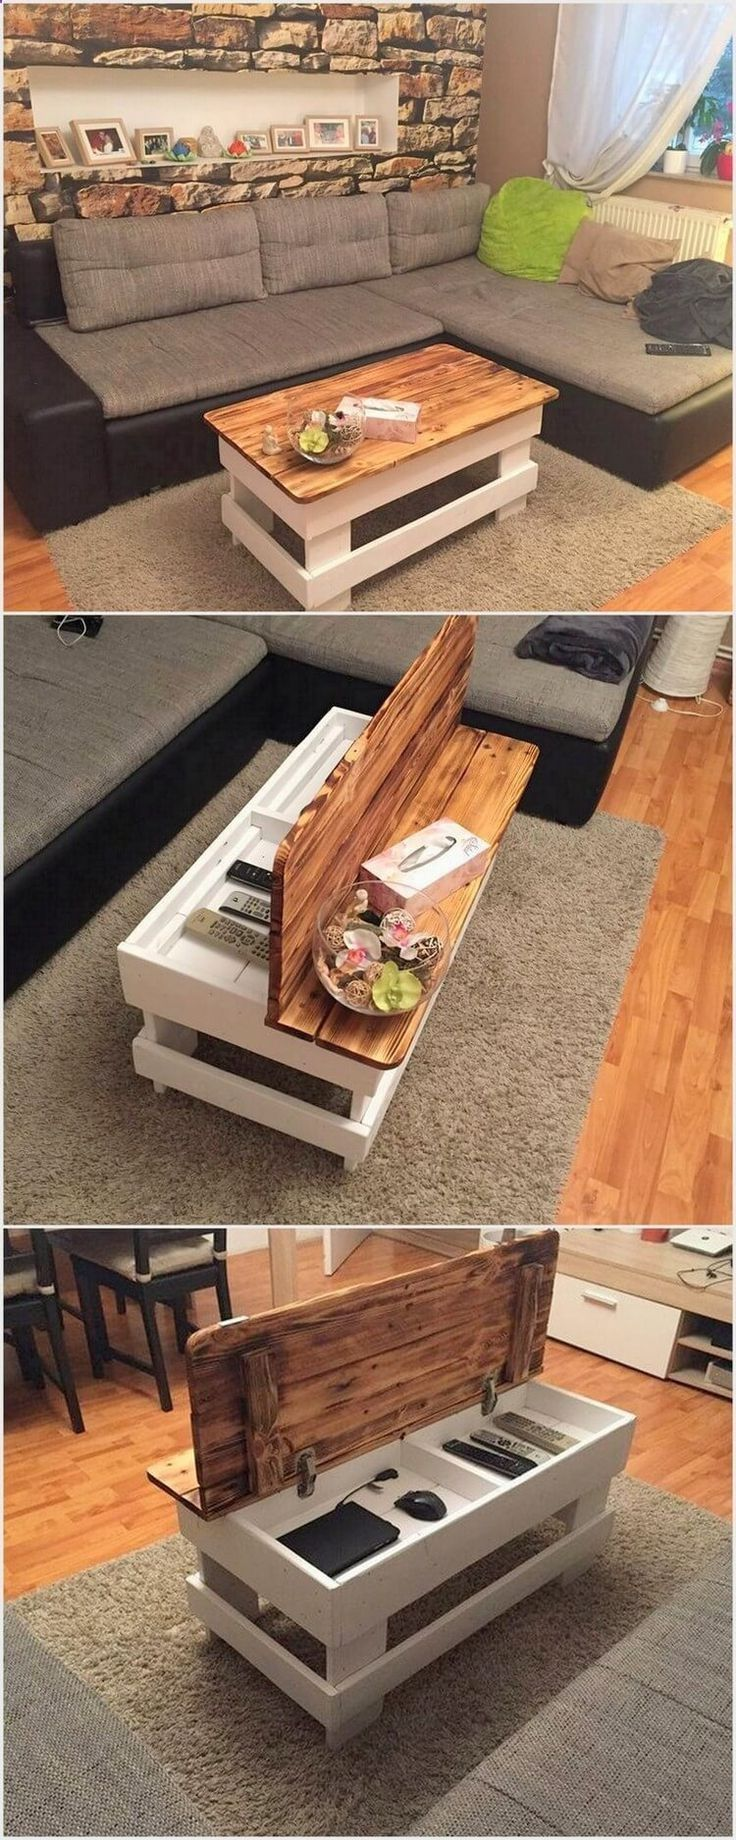 Adding the house with the stylish wood pallet table along feature of storage in it is the utmost demand of the house owners. Majority of the wood pallet tables do not involve the service of the storage in it. But you can take the advantage of the storage